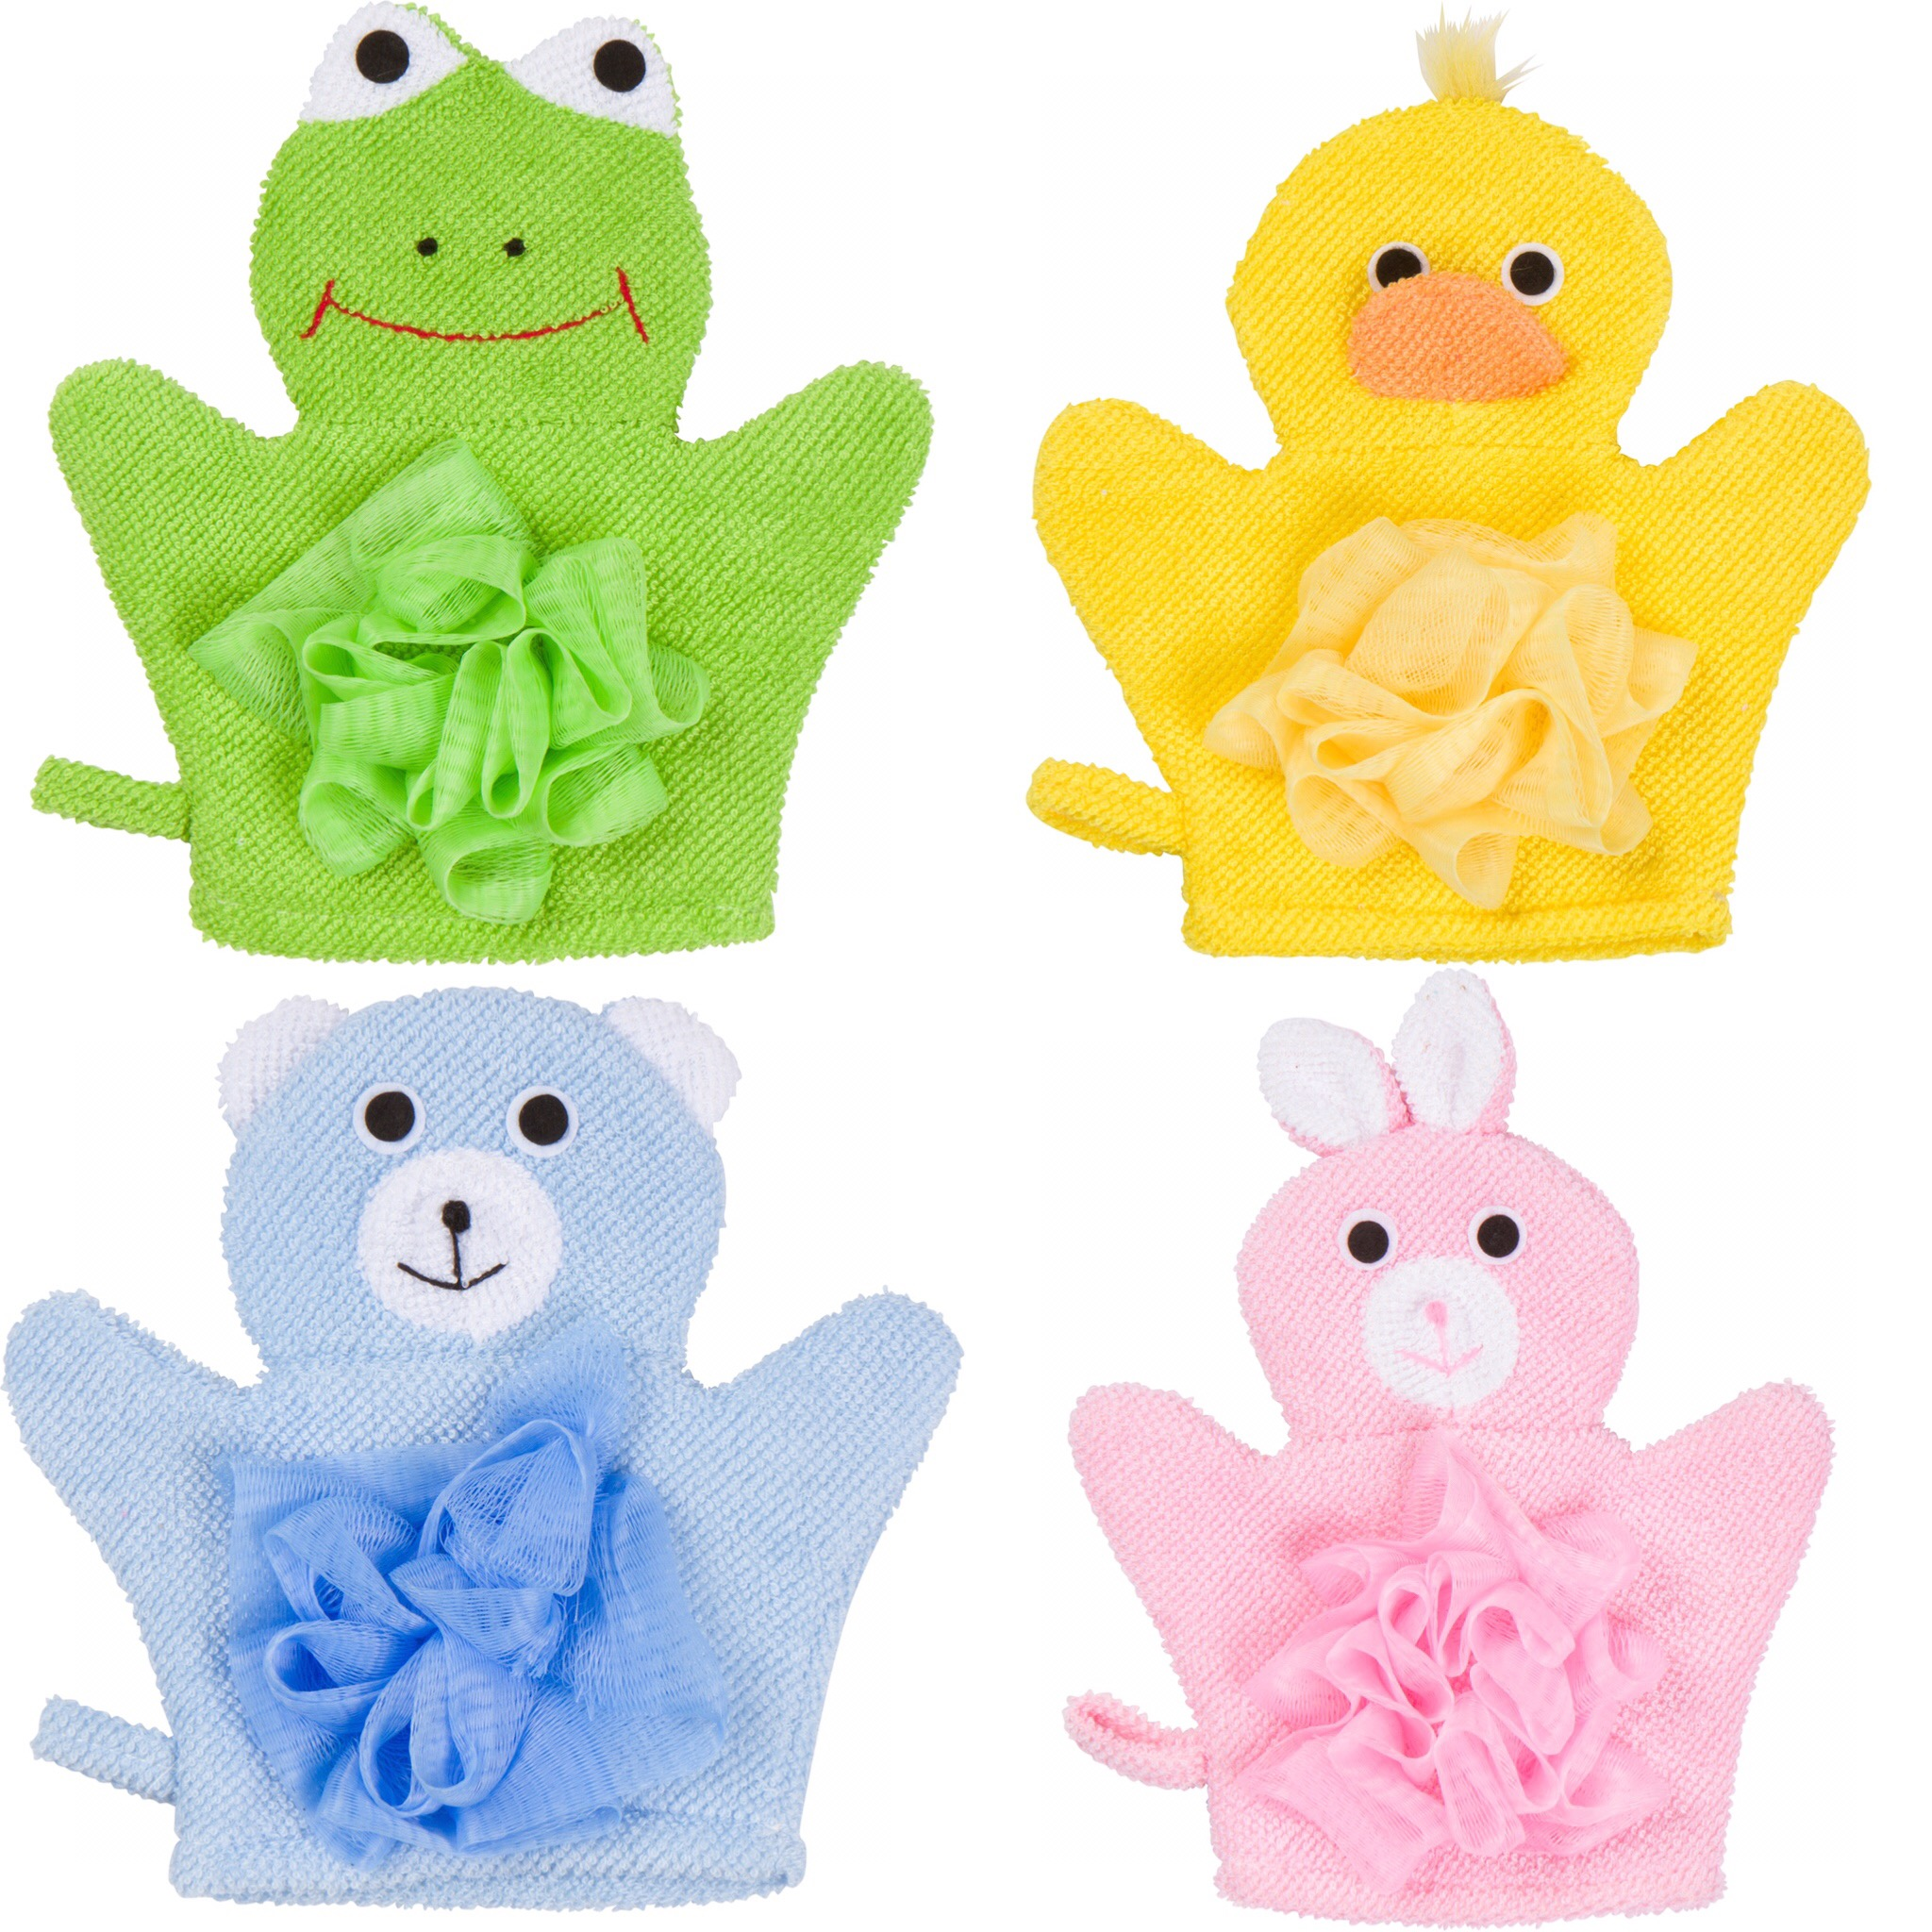 Hand Puppet Wash Bath Mitt Towel with Sponge and Scrunchie Puff Scrub Mesh for Bathing... by